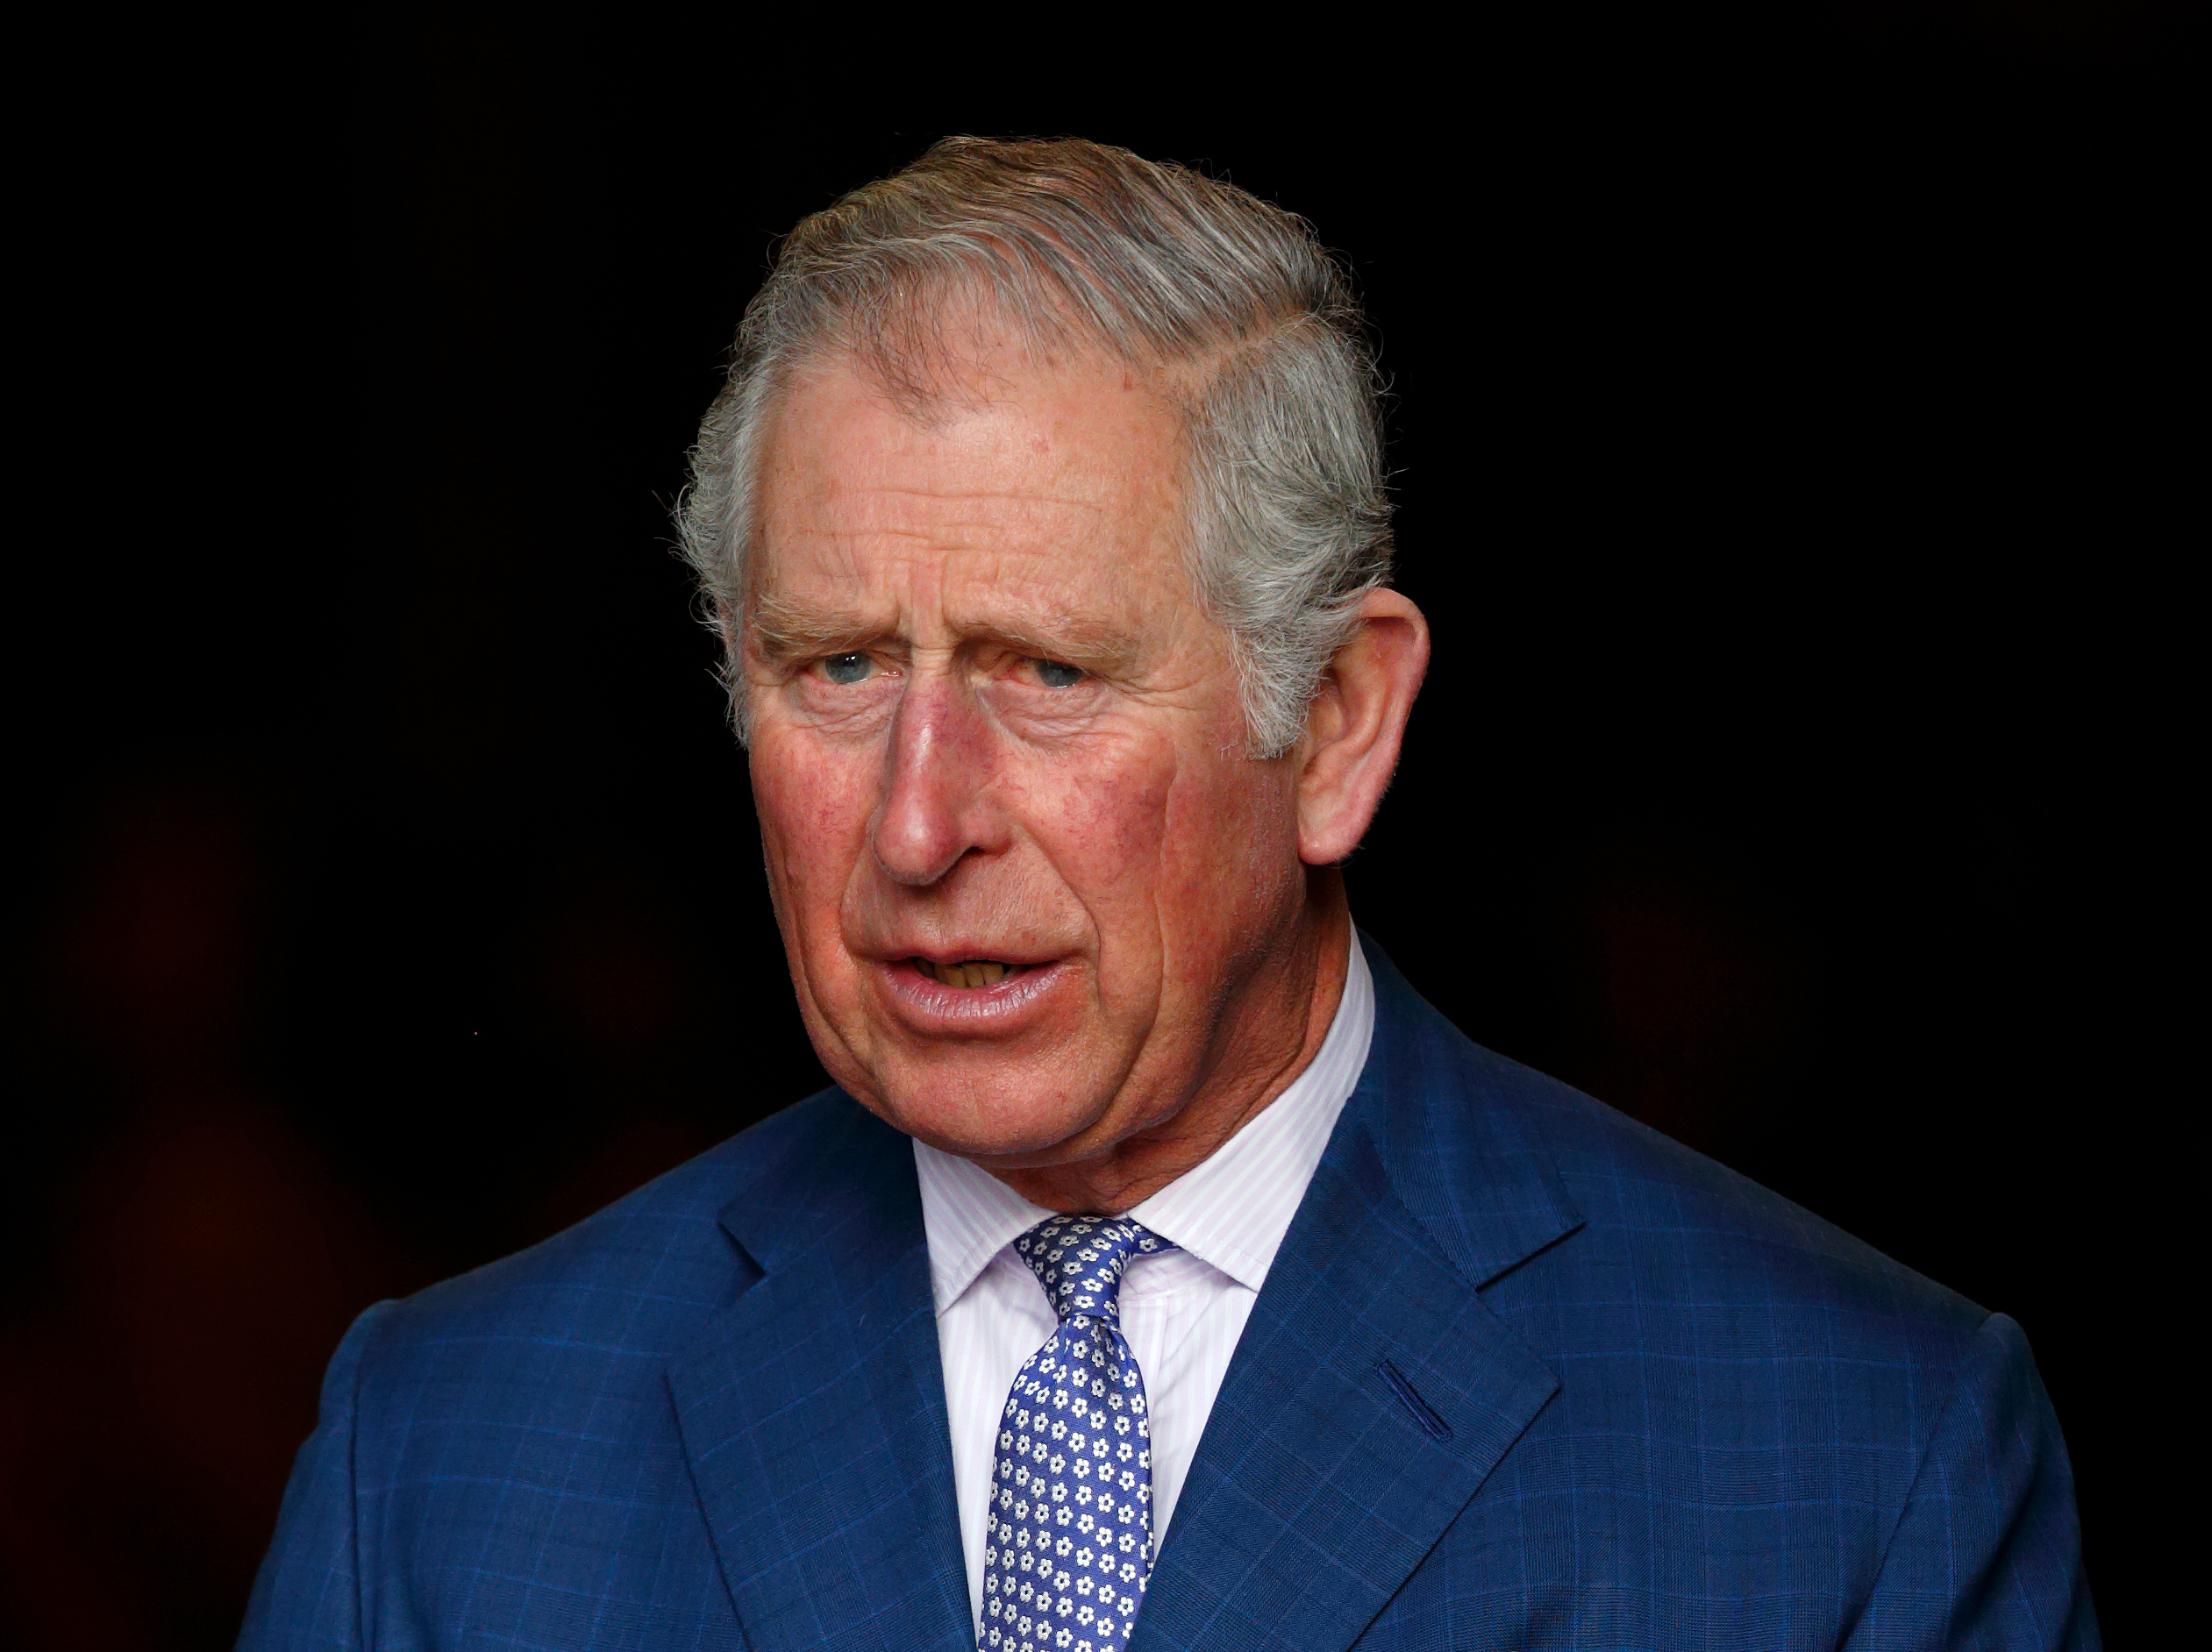 MARCH 13 2017- Prince Charles, Prince of Wales attends a Commonwealth Day Service at Westminster Abbey